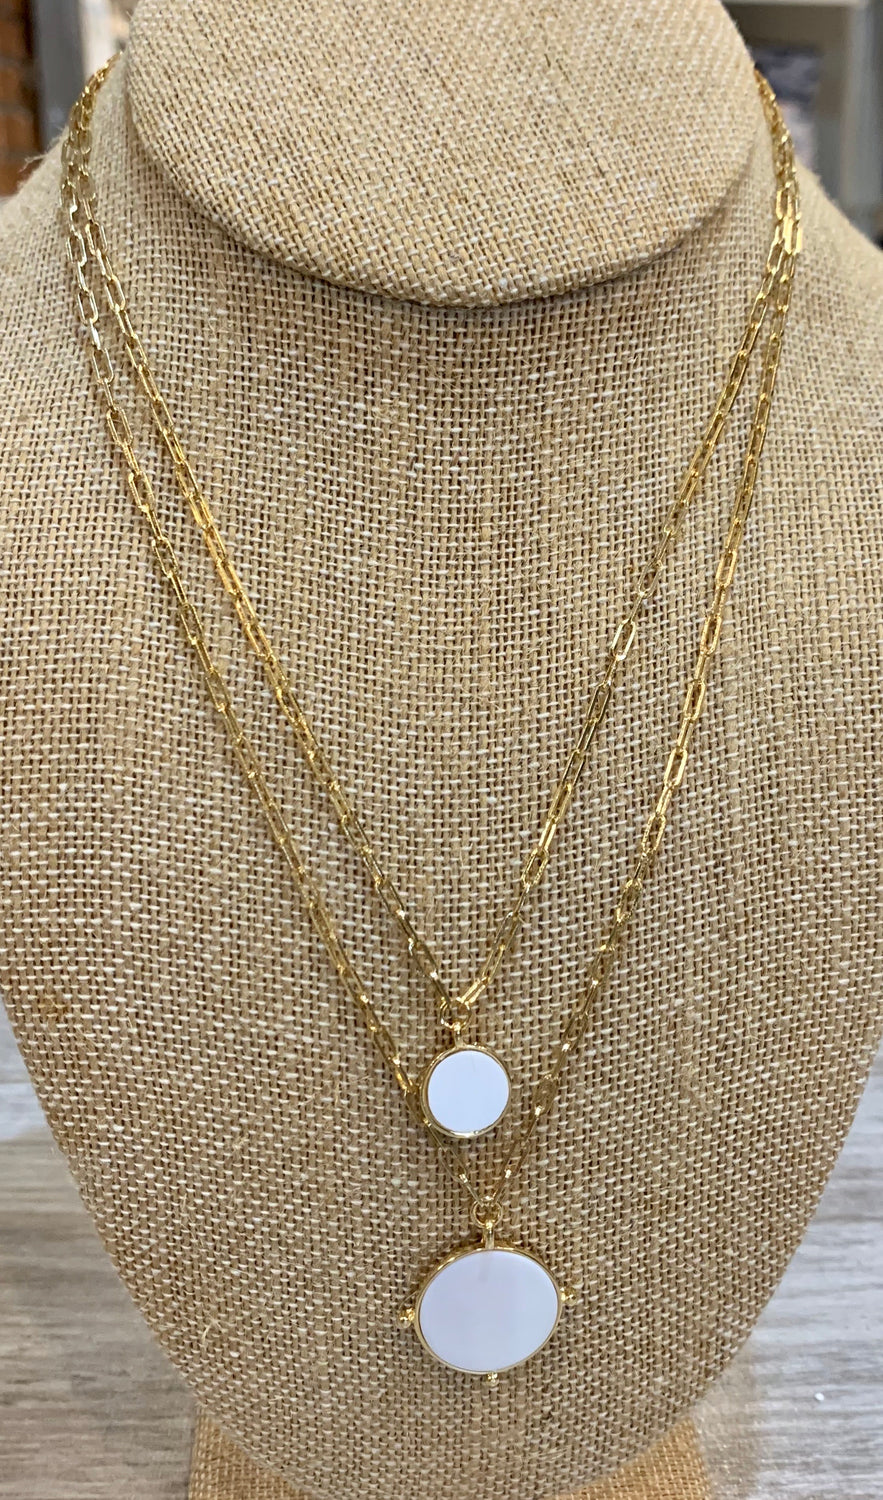 Necklace: double layer white disc necklace